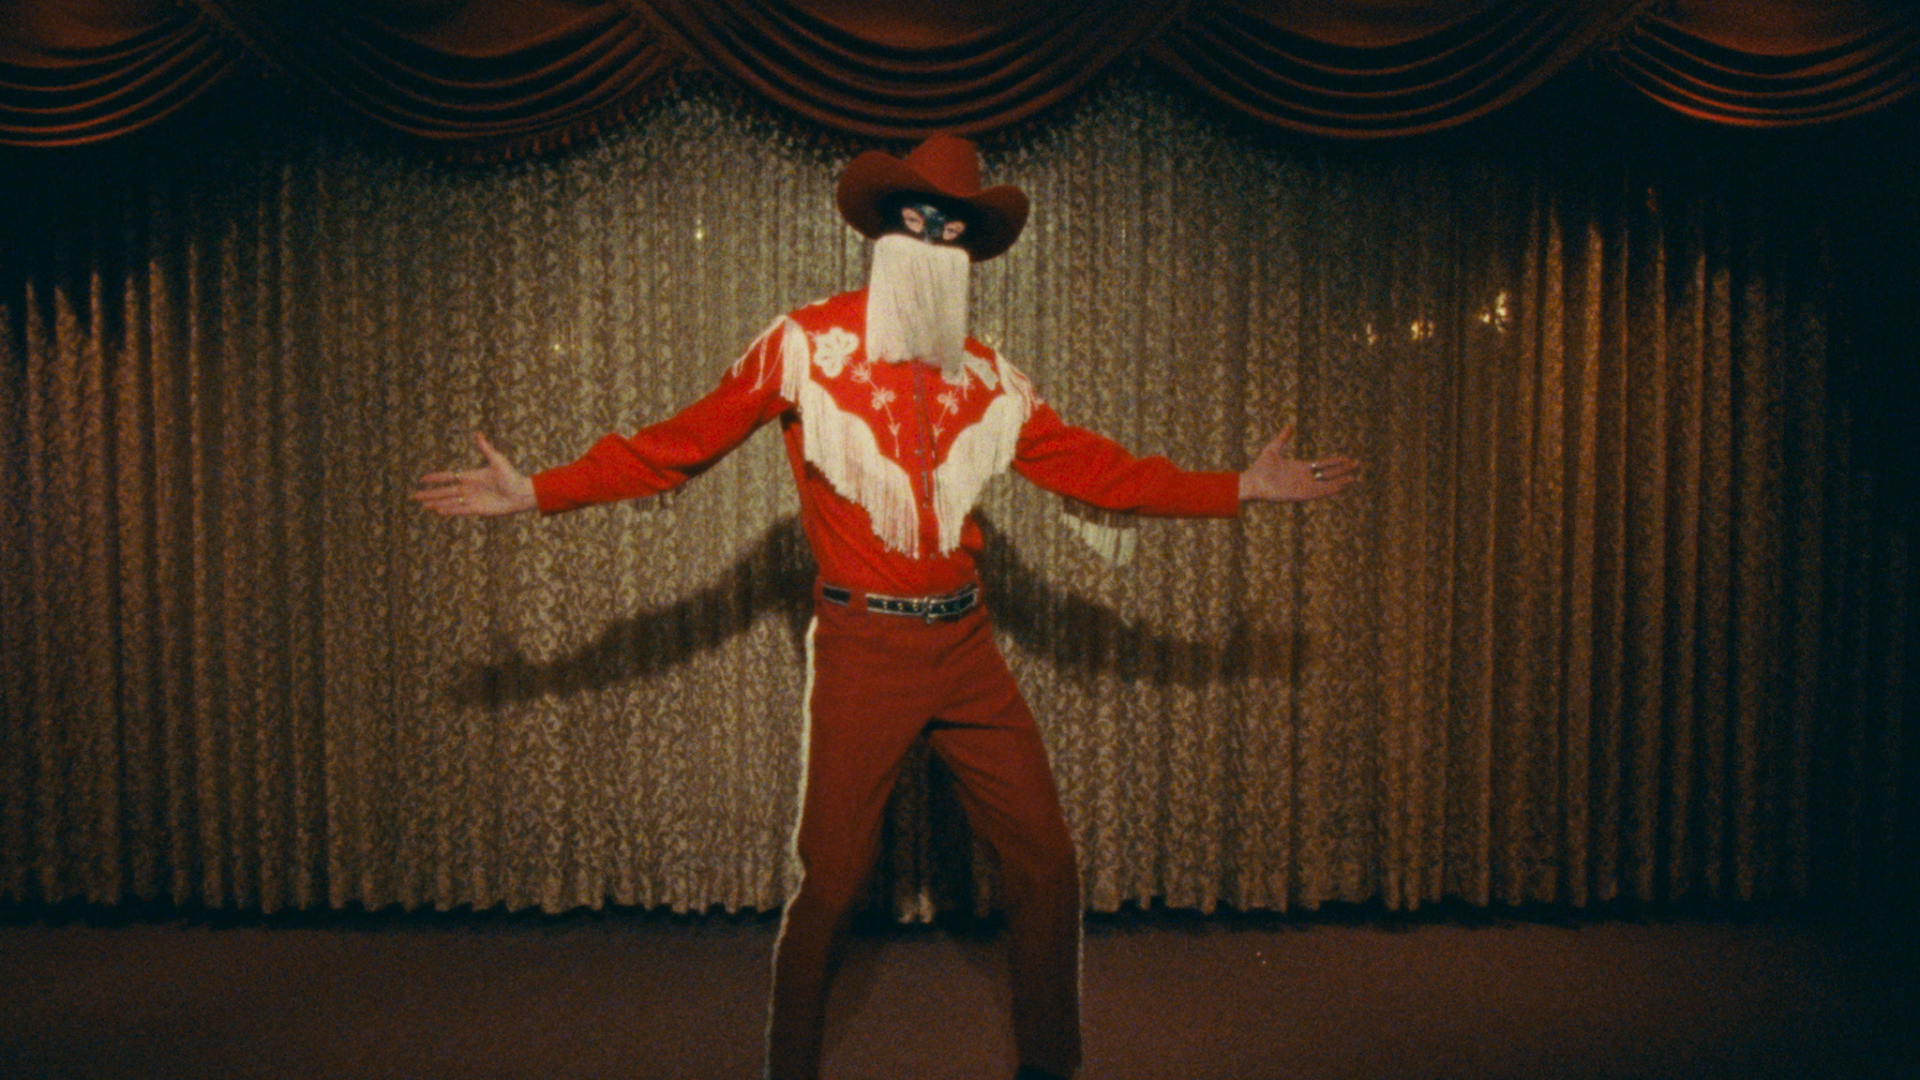 Orville-Peck-Dead-of-Night-20190109-WITHOUT-two-pop-ProResHQ.mov.01_01_34_07.Still004-16x9-1920x1080.png